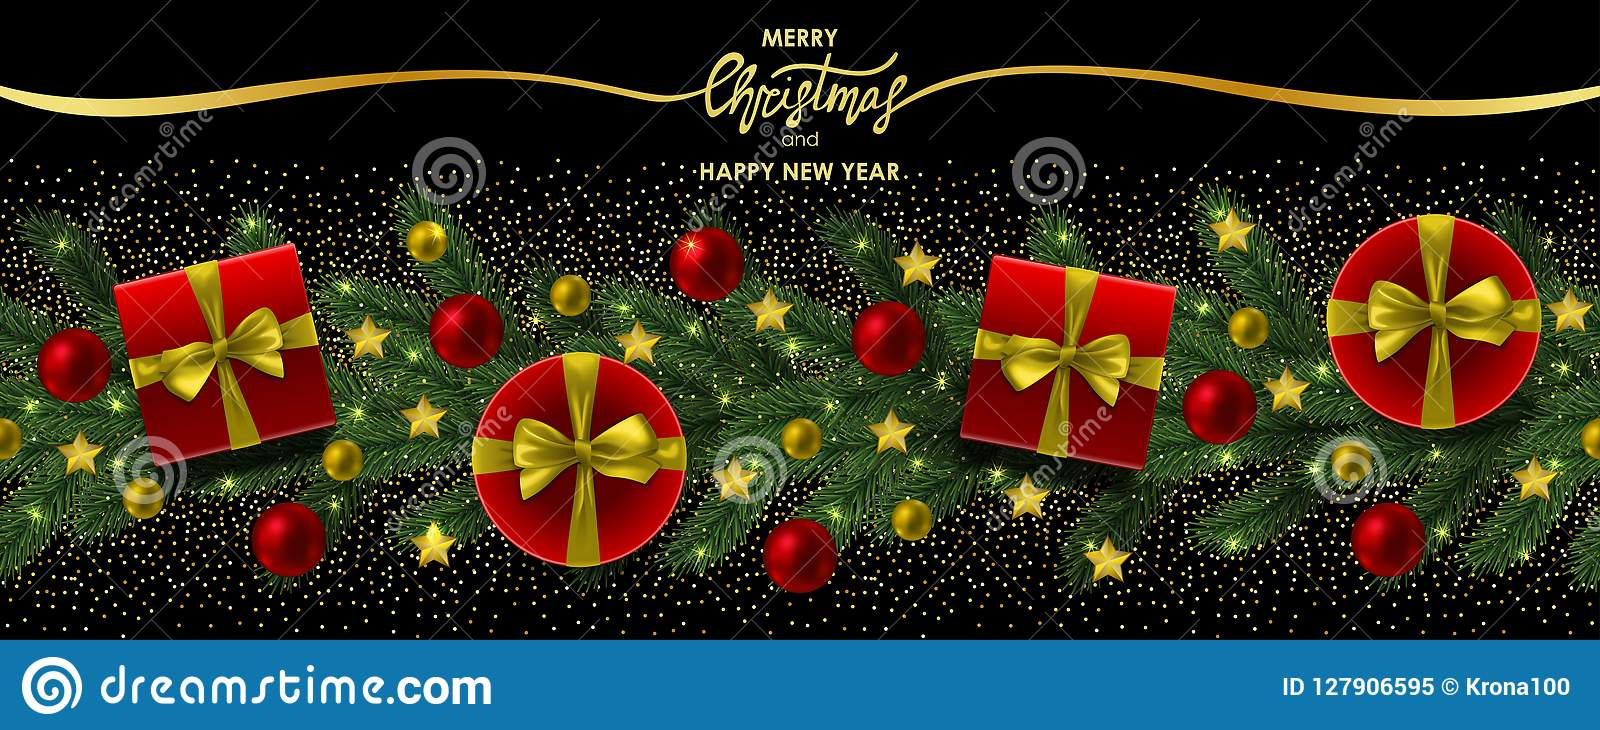 merry christmas and happy new year web banner